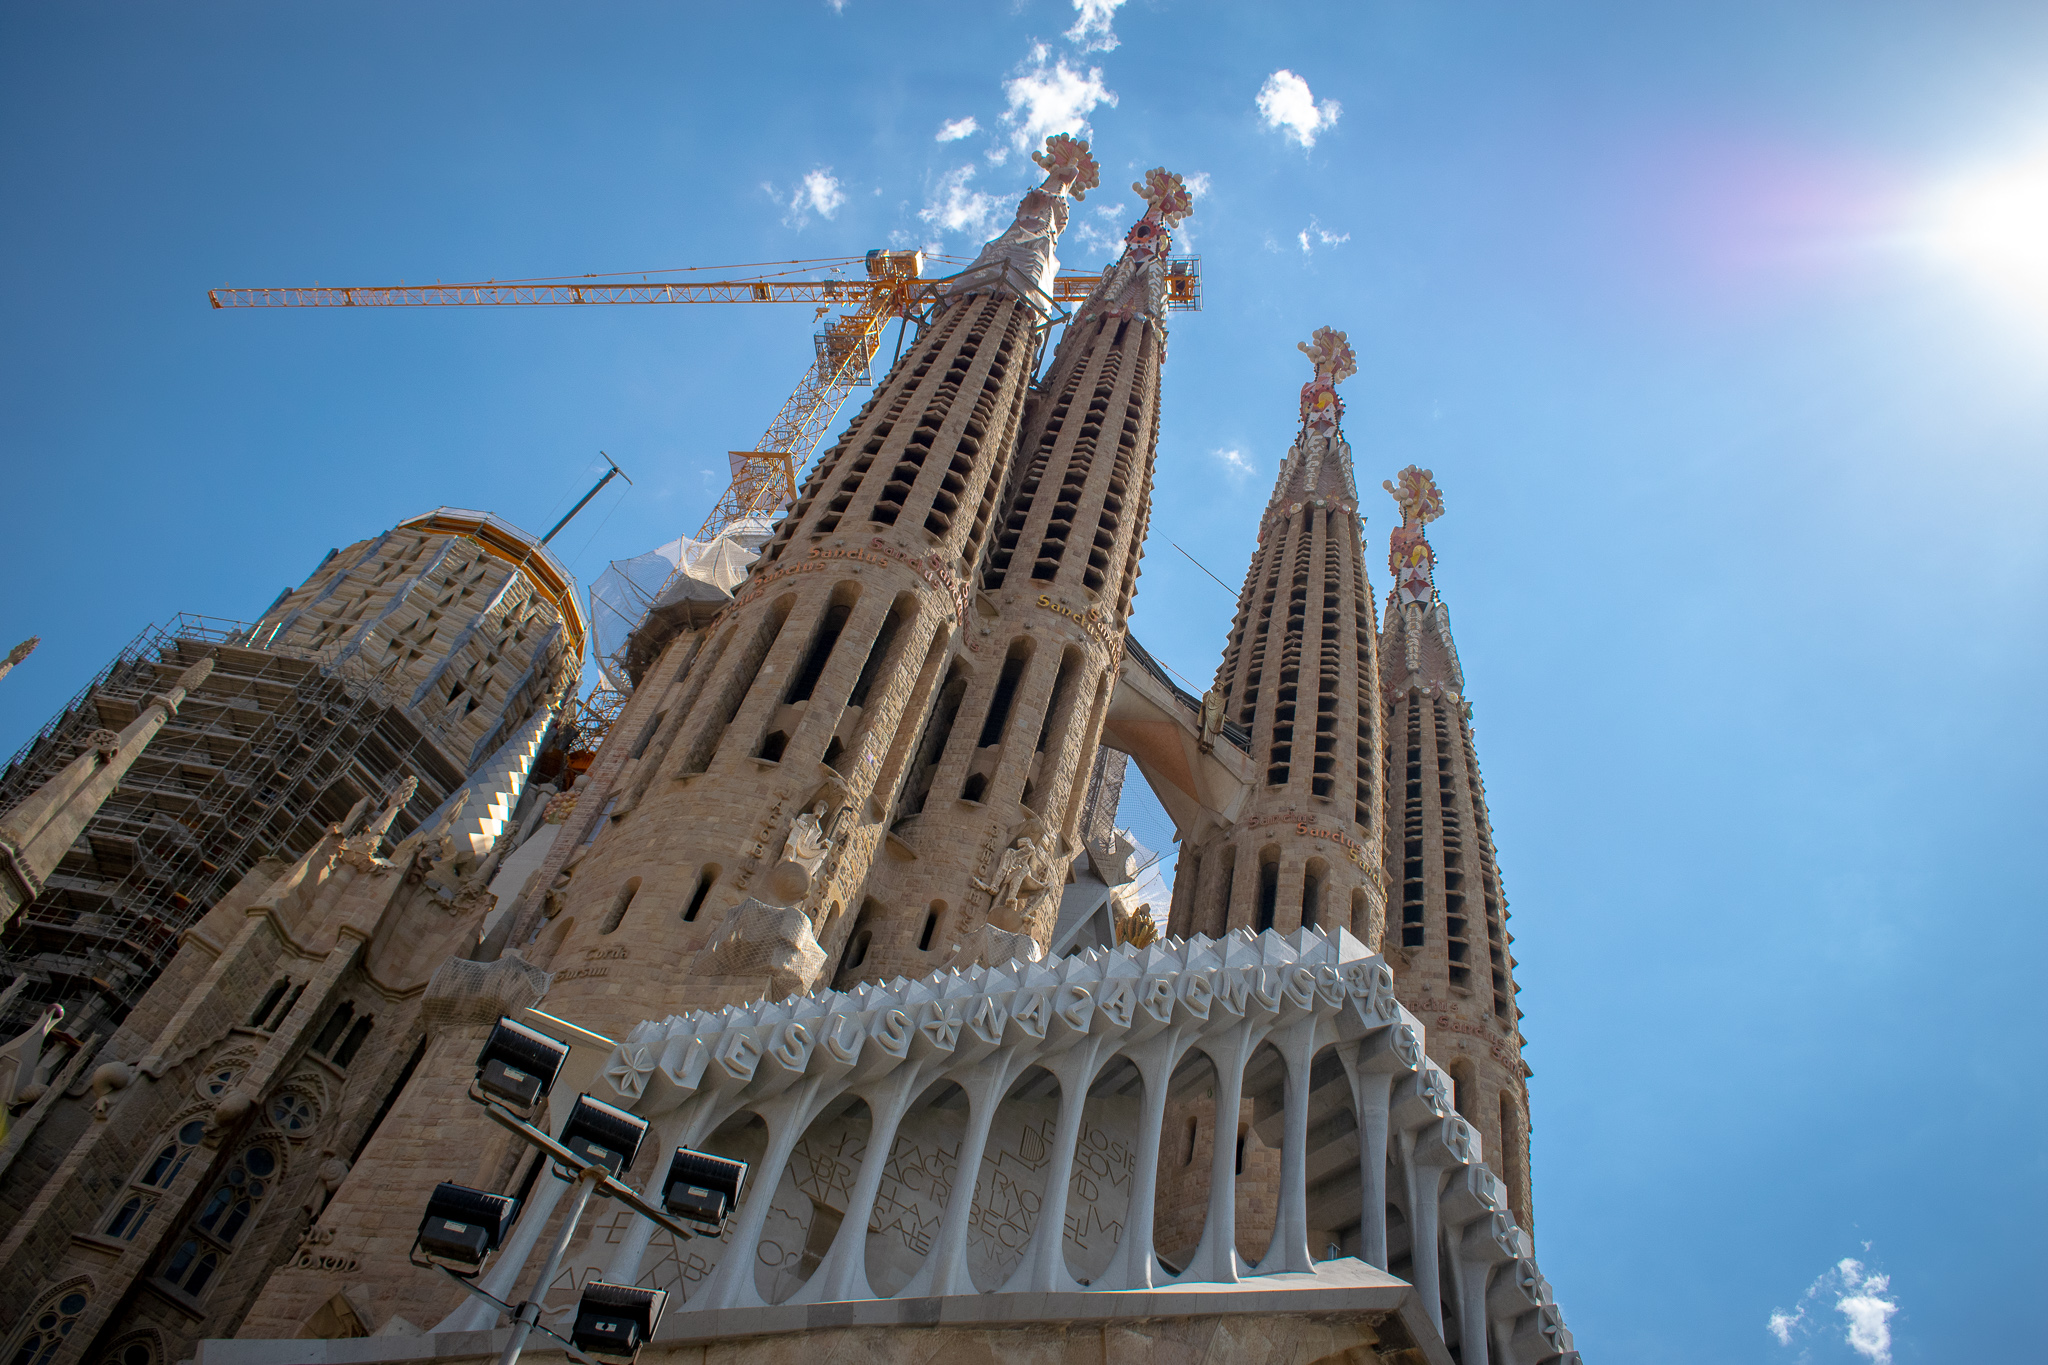 Cranes are part and parcel of the Sagrada Família experience as it is yet to be completed.